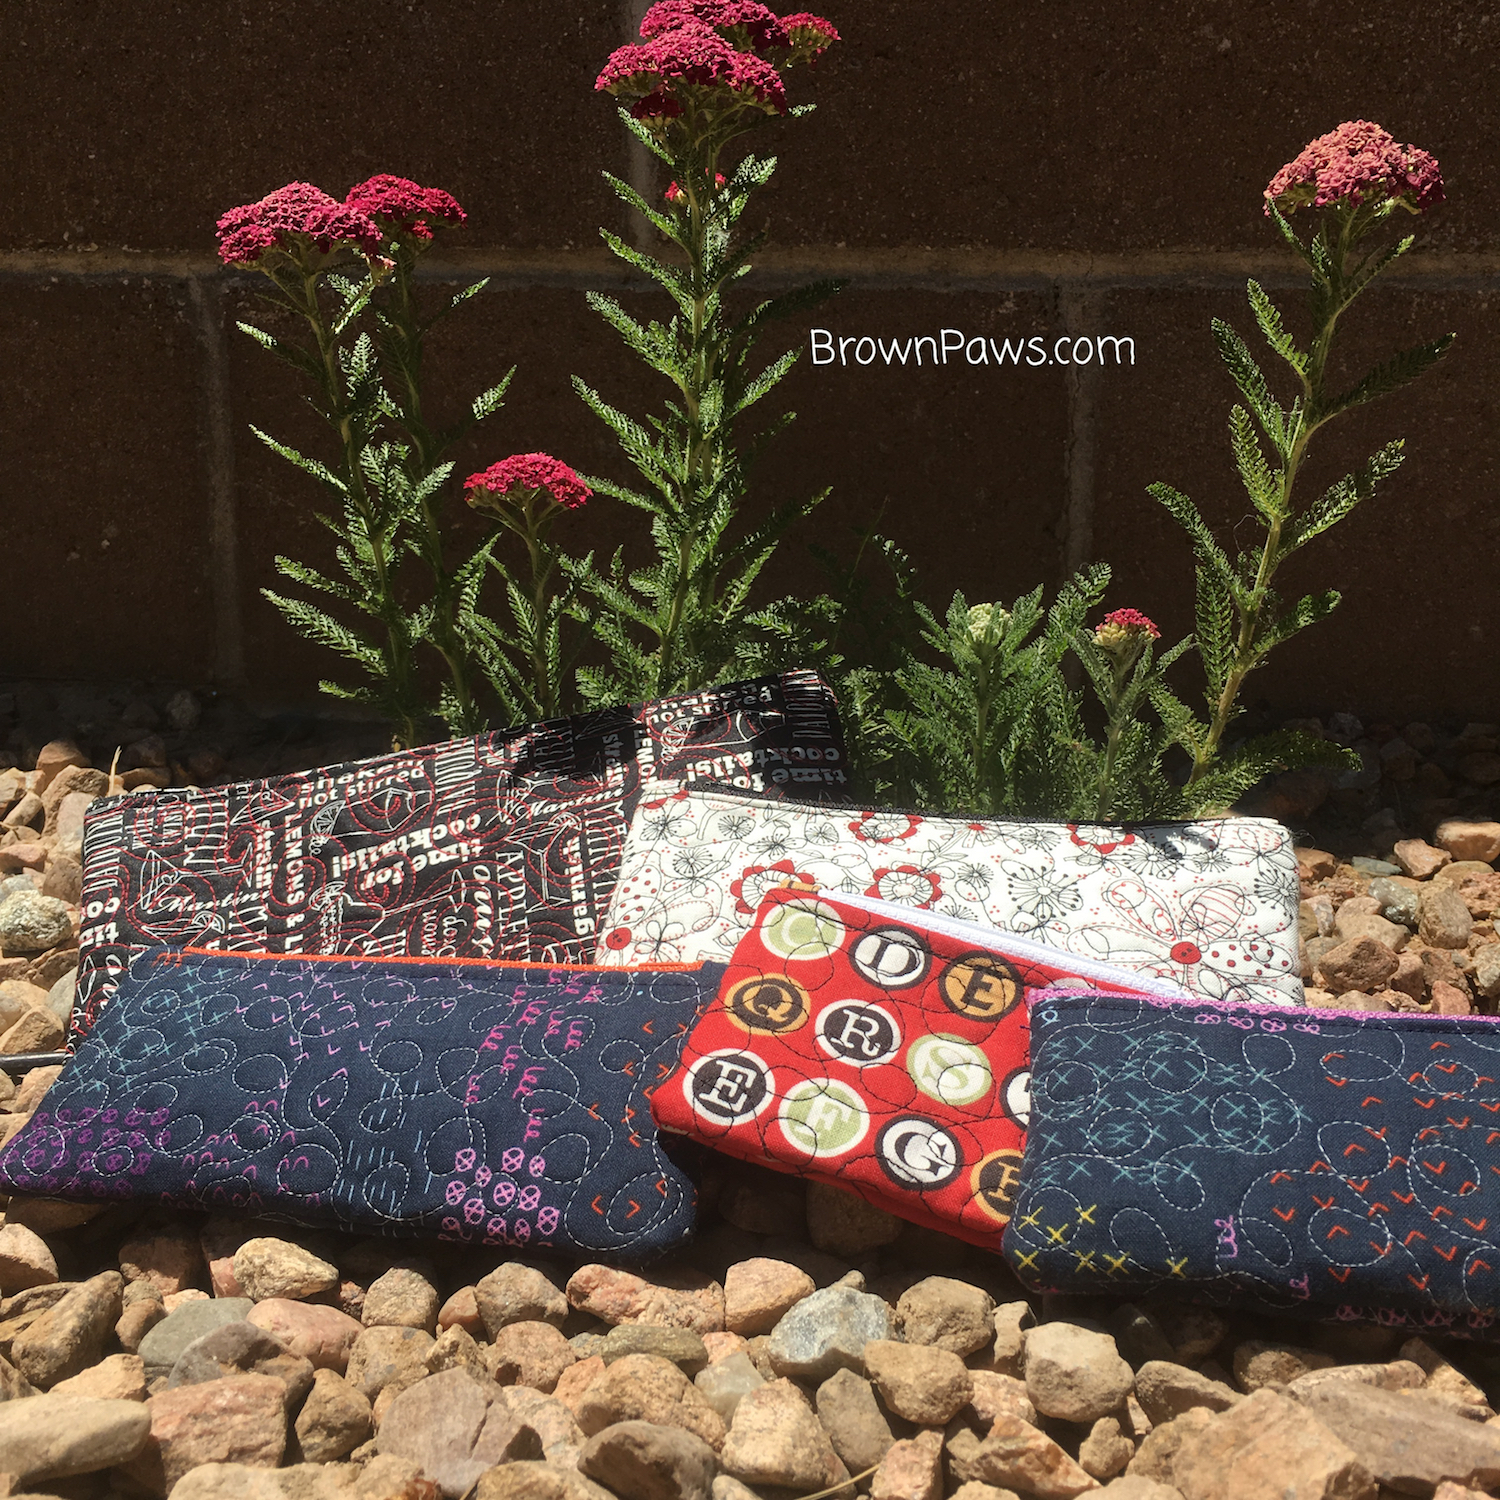 Zipper Bags and Glasses Cases